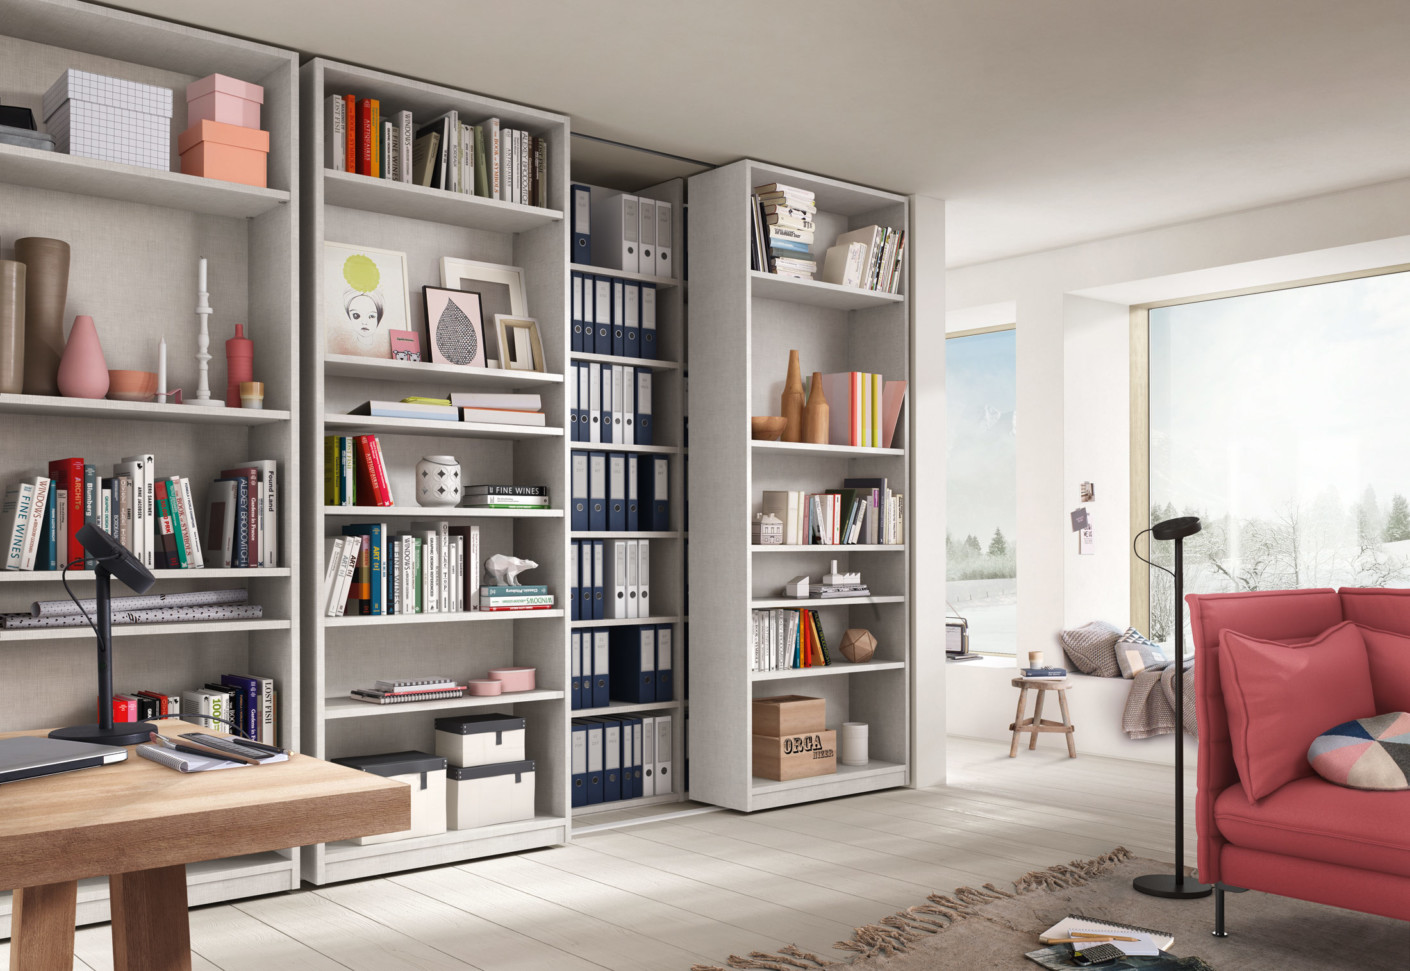 Office contract furniture storage shelving shelf systems - Rima Interior System By Raumplus Stylepark